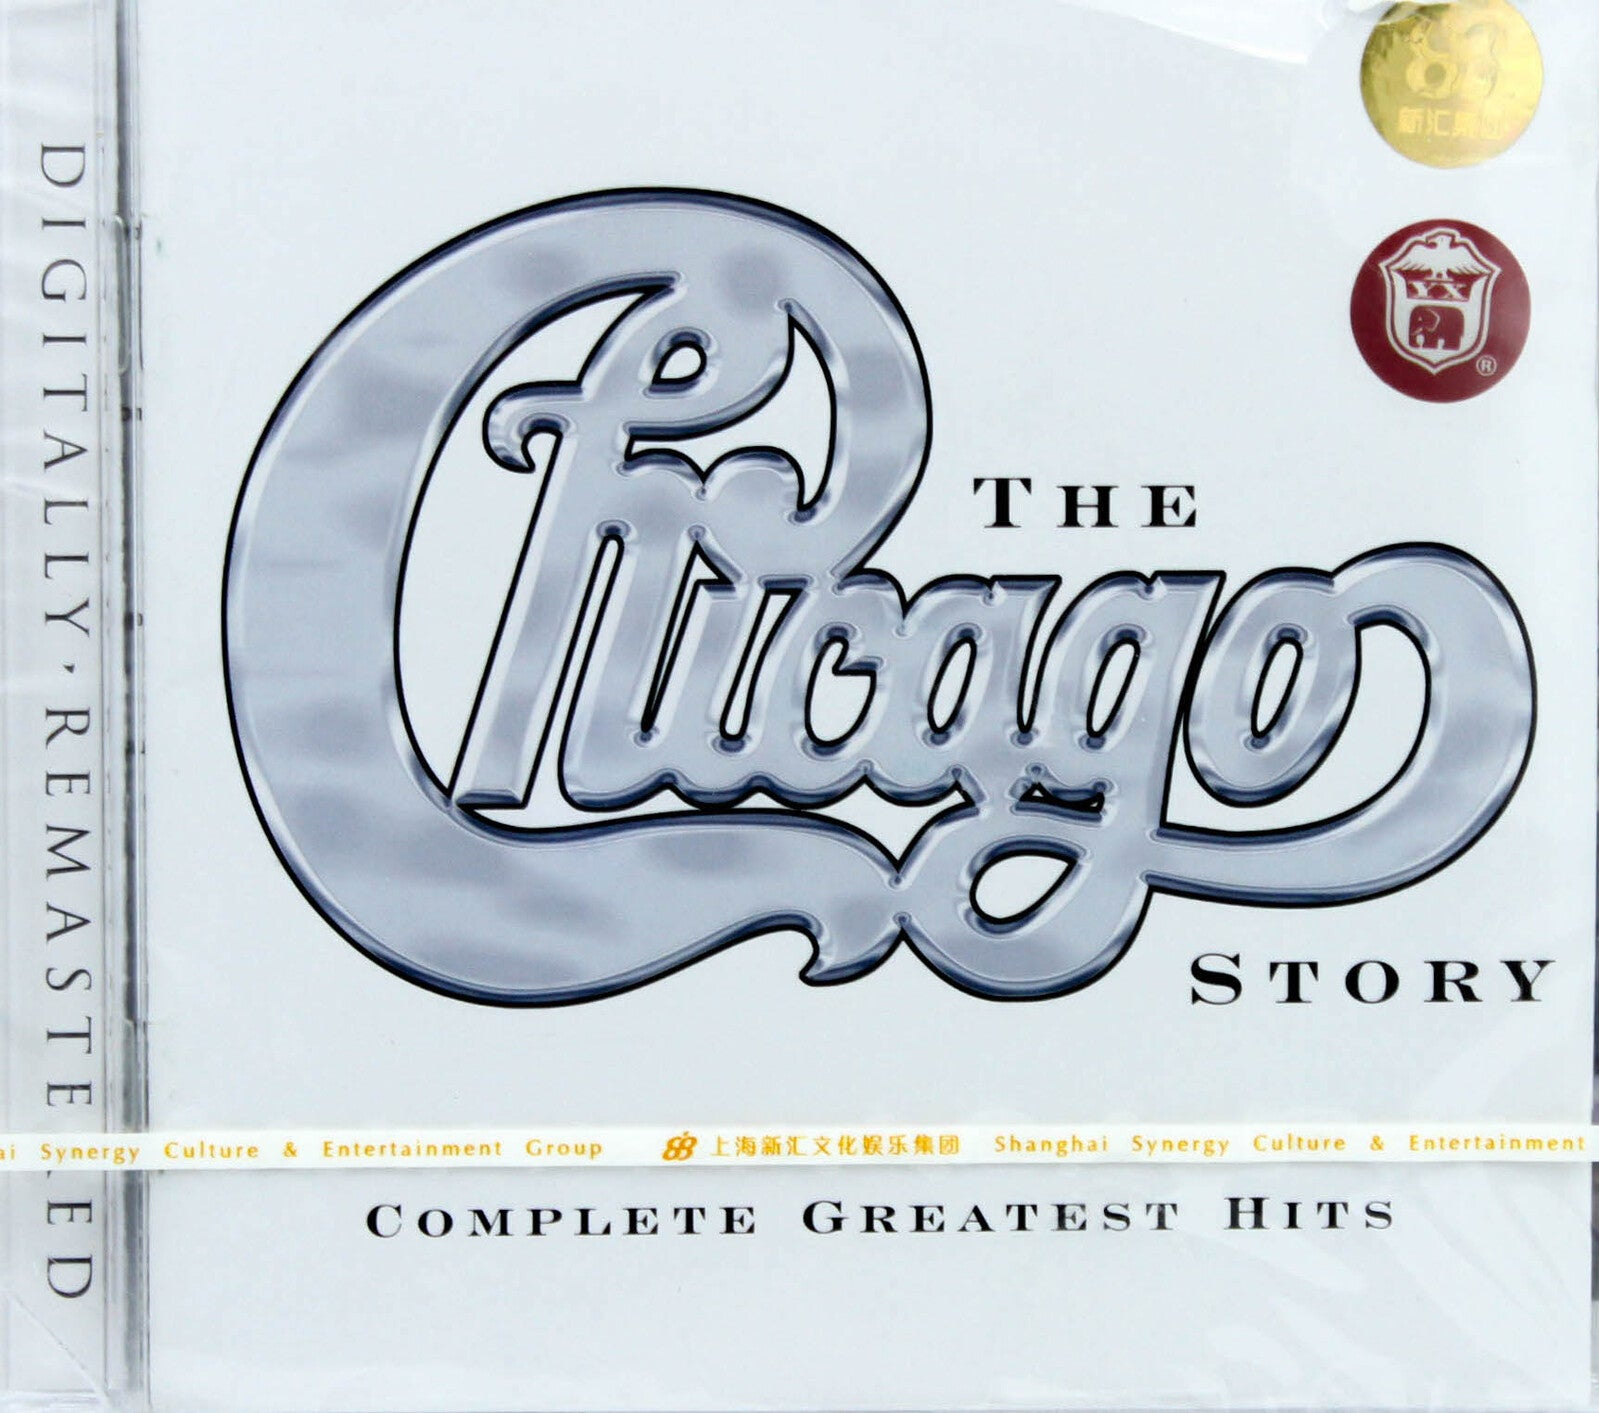 The Chicago Story CD